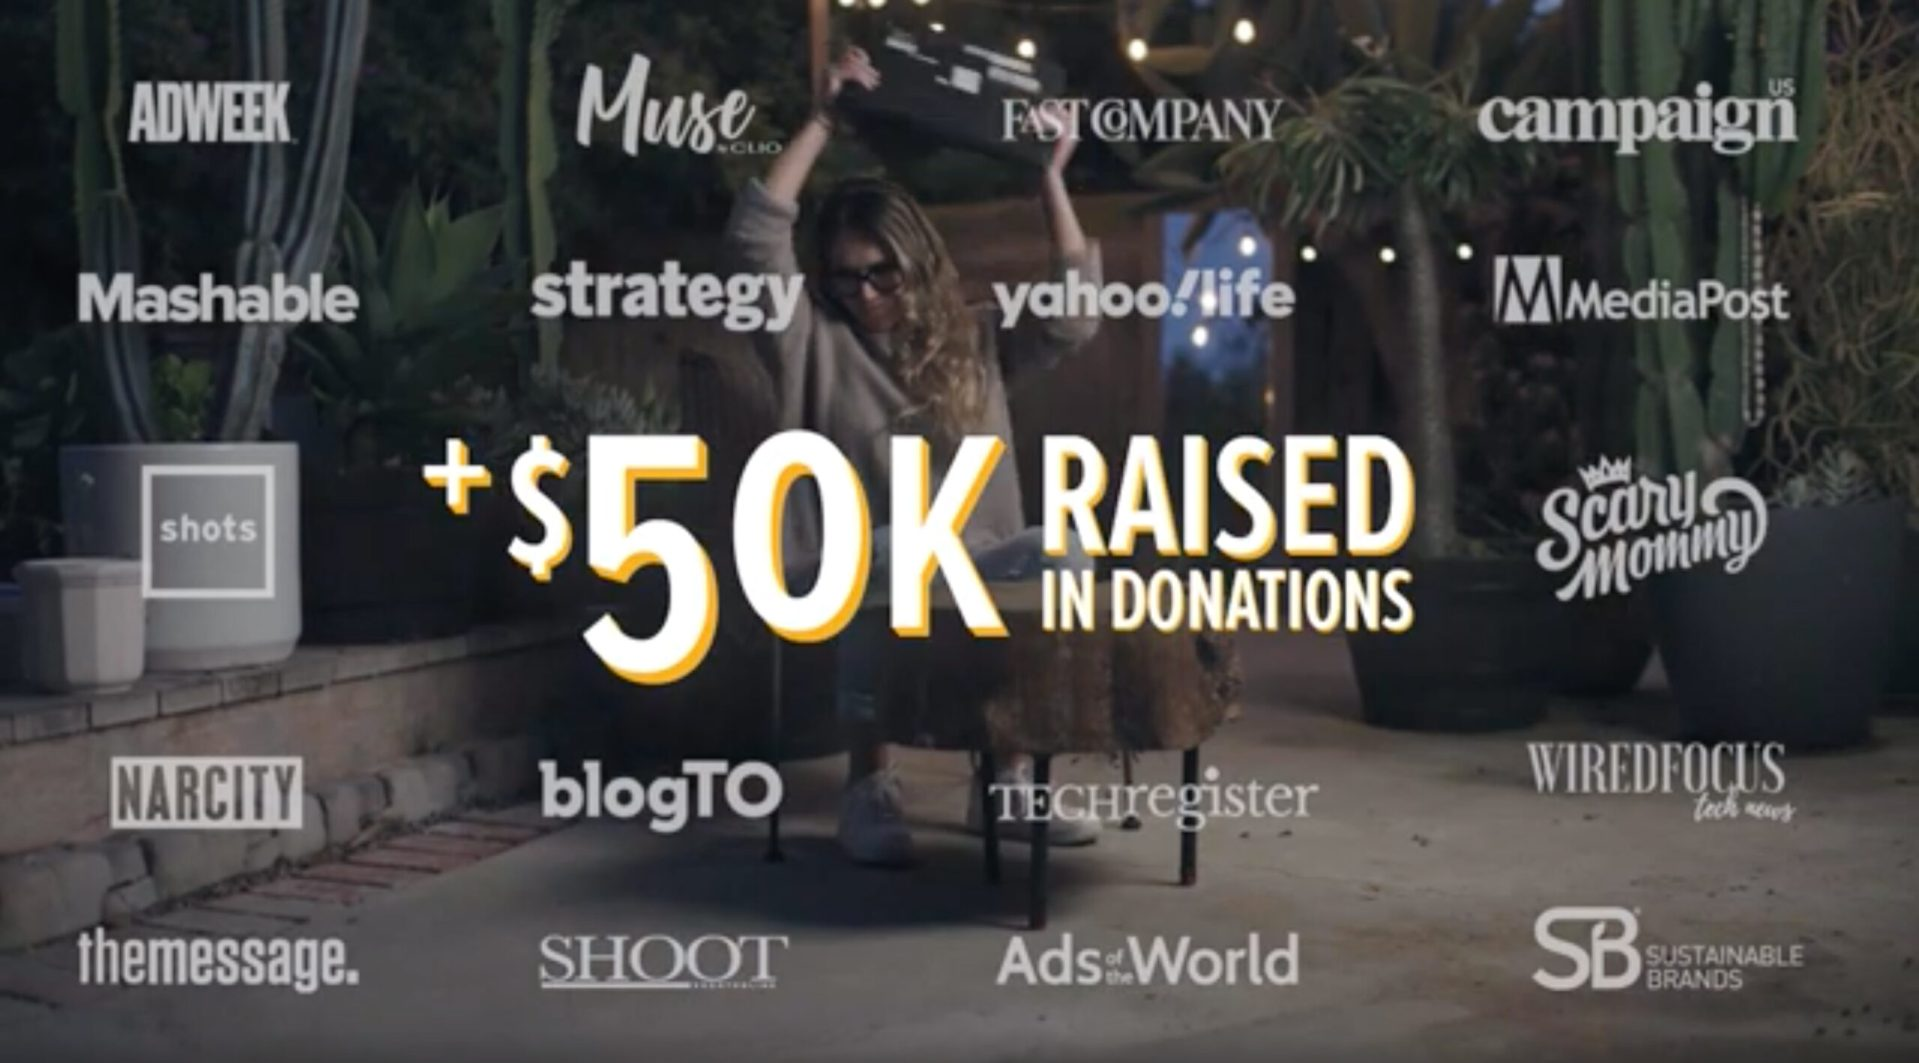 Logos of publications where campaign was featured along with impact $50k money raised in donations